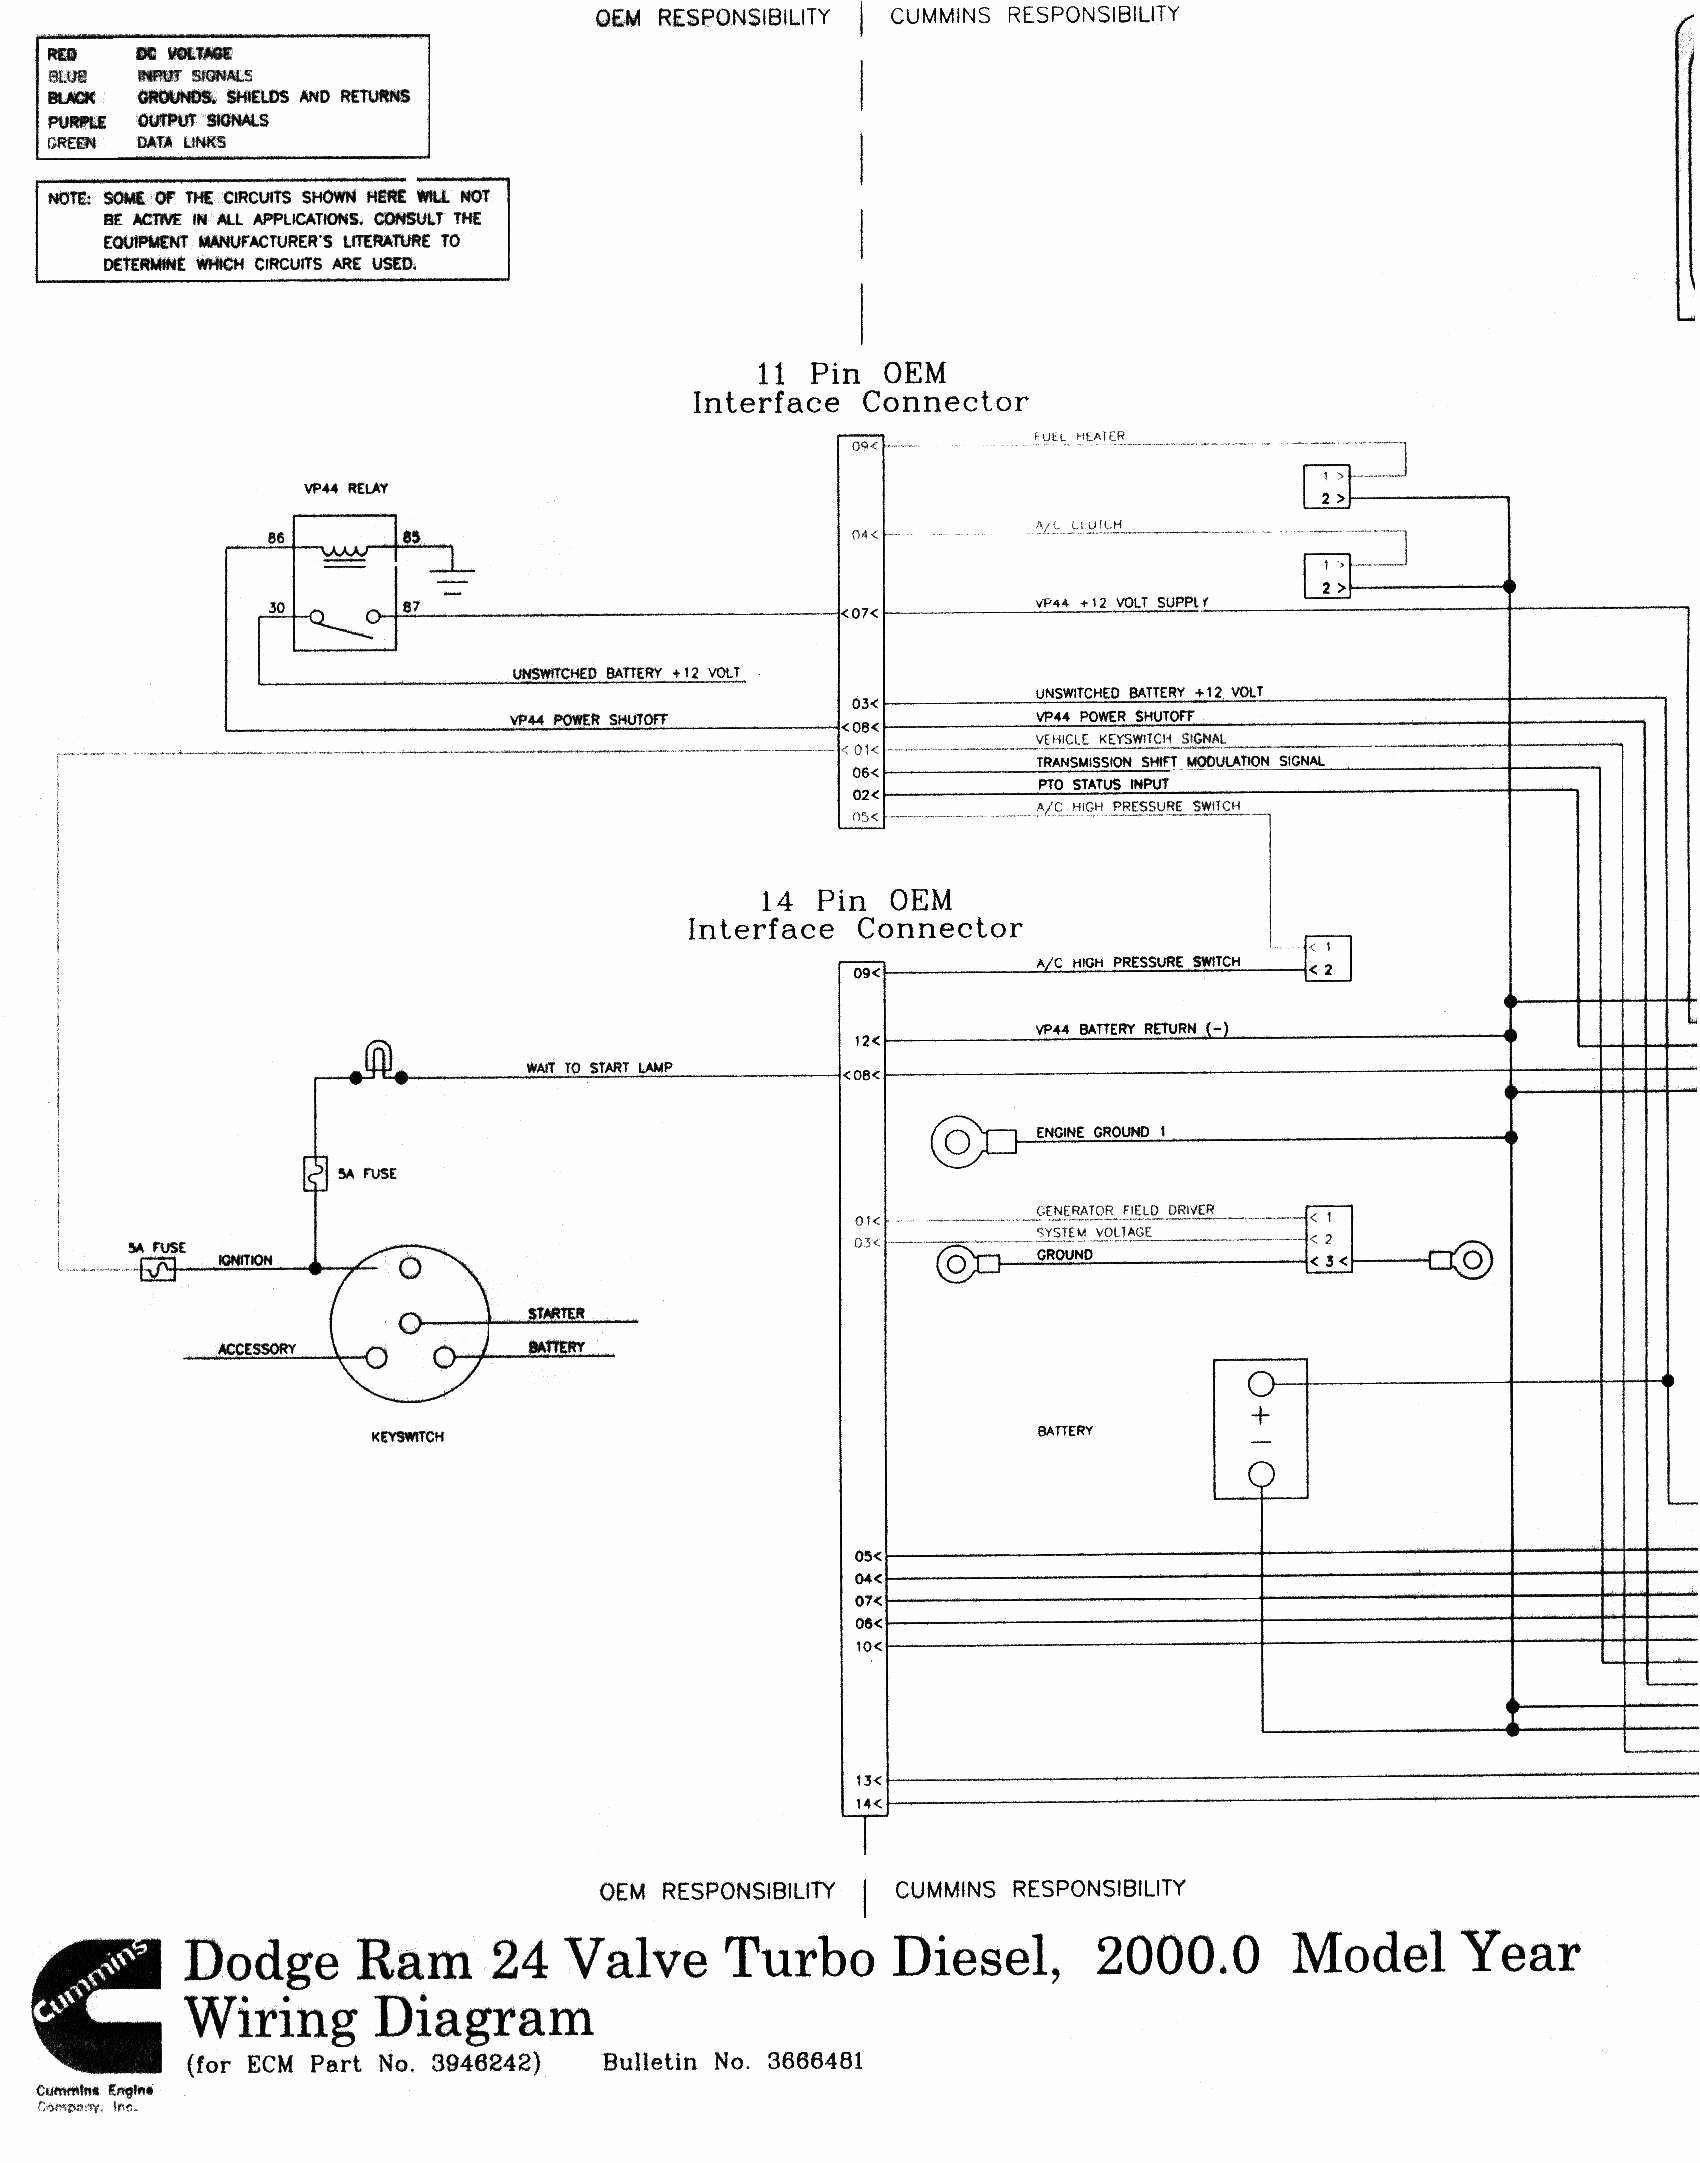 [DIAGRAM_09CH]  01 Ram Headlight Wiring Diagram - 2001 Dodge Intrepid Radio Wiring Diagram  for Wiring Diagram Schematics | Wiring Diagram For 99 Dodge 3500 |  | Wiring Diagram Schematics